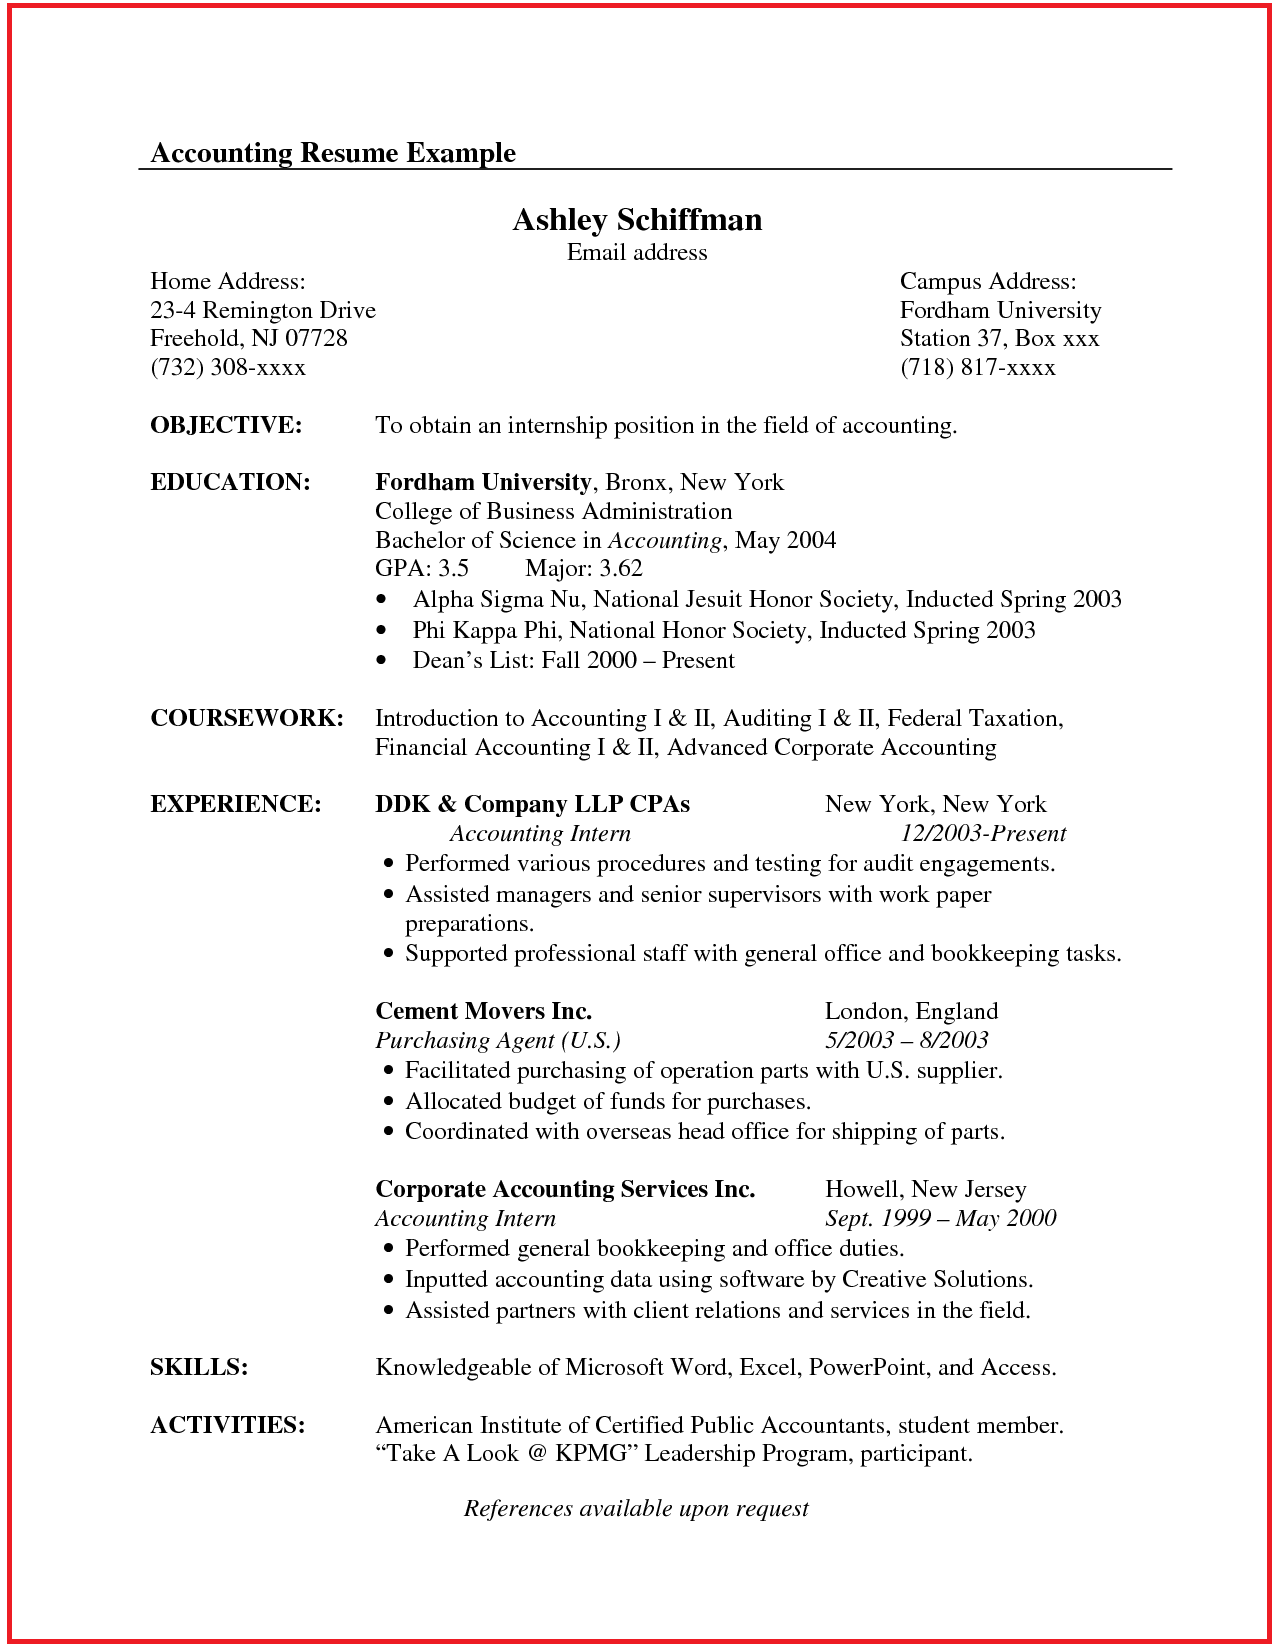 Accountant Resume Sample Canada - Http://www.jobresume.website/accountant- Resume-Sample-Canada/